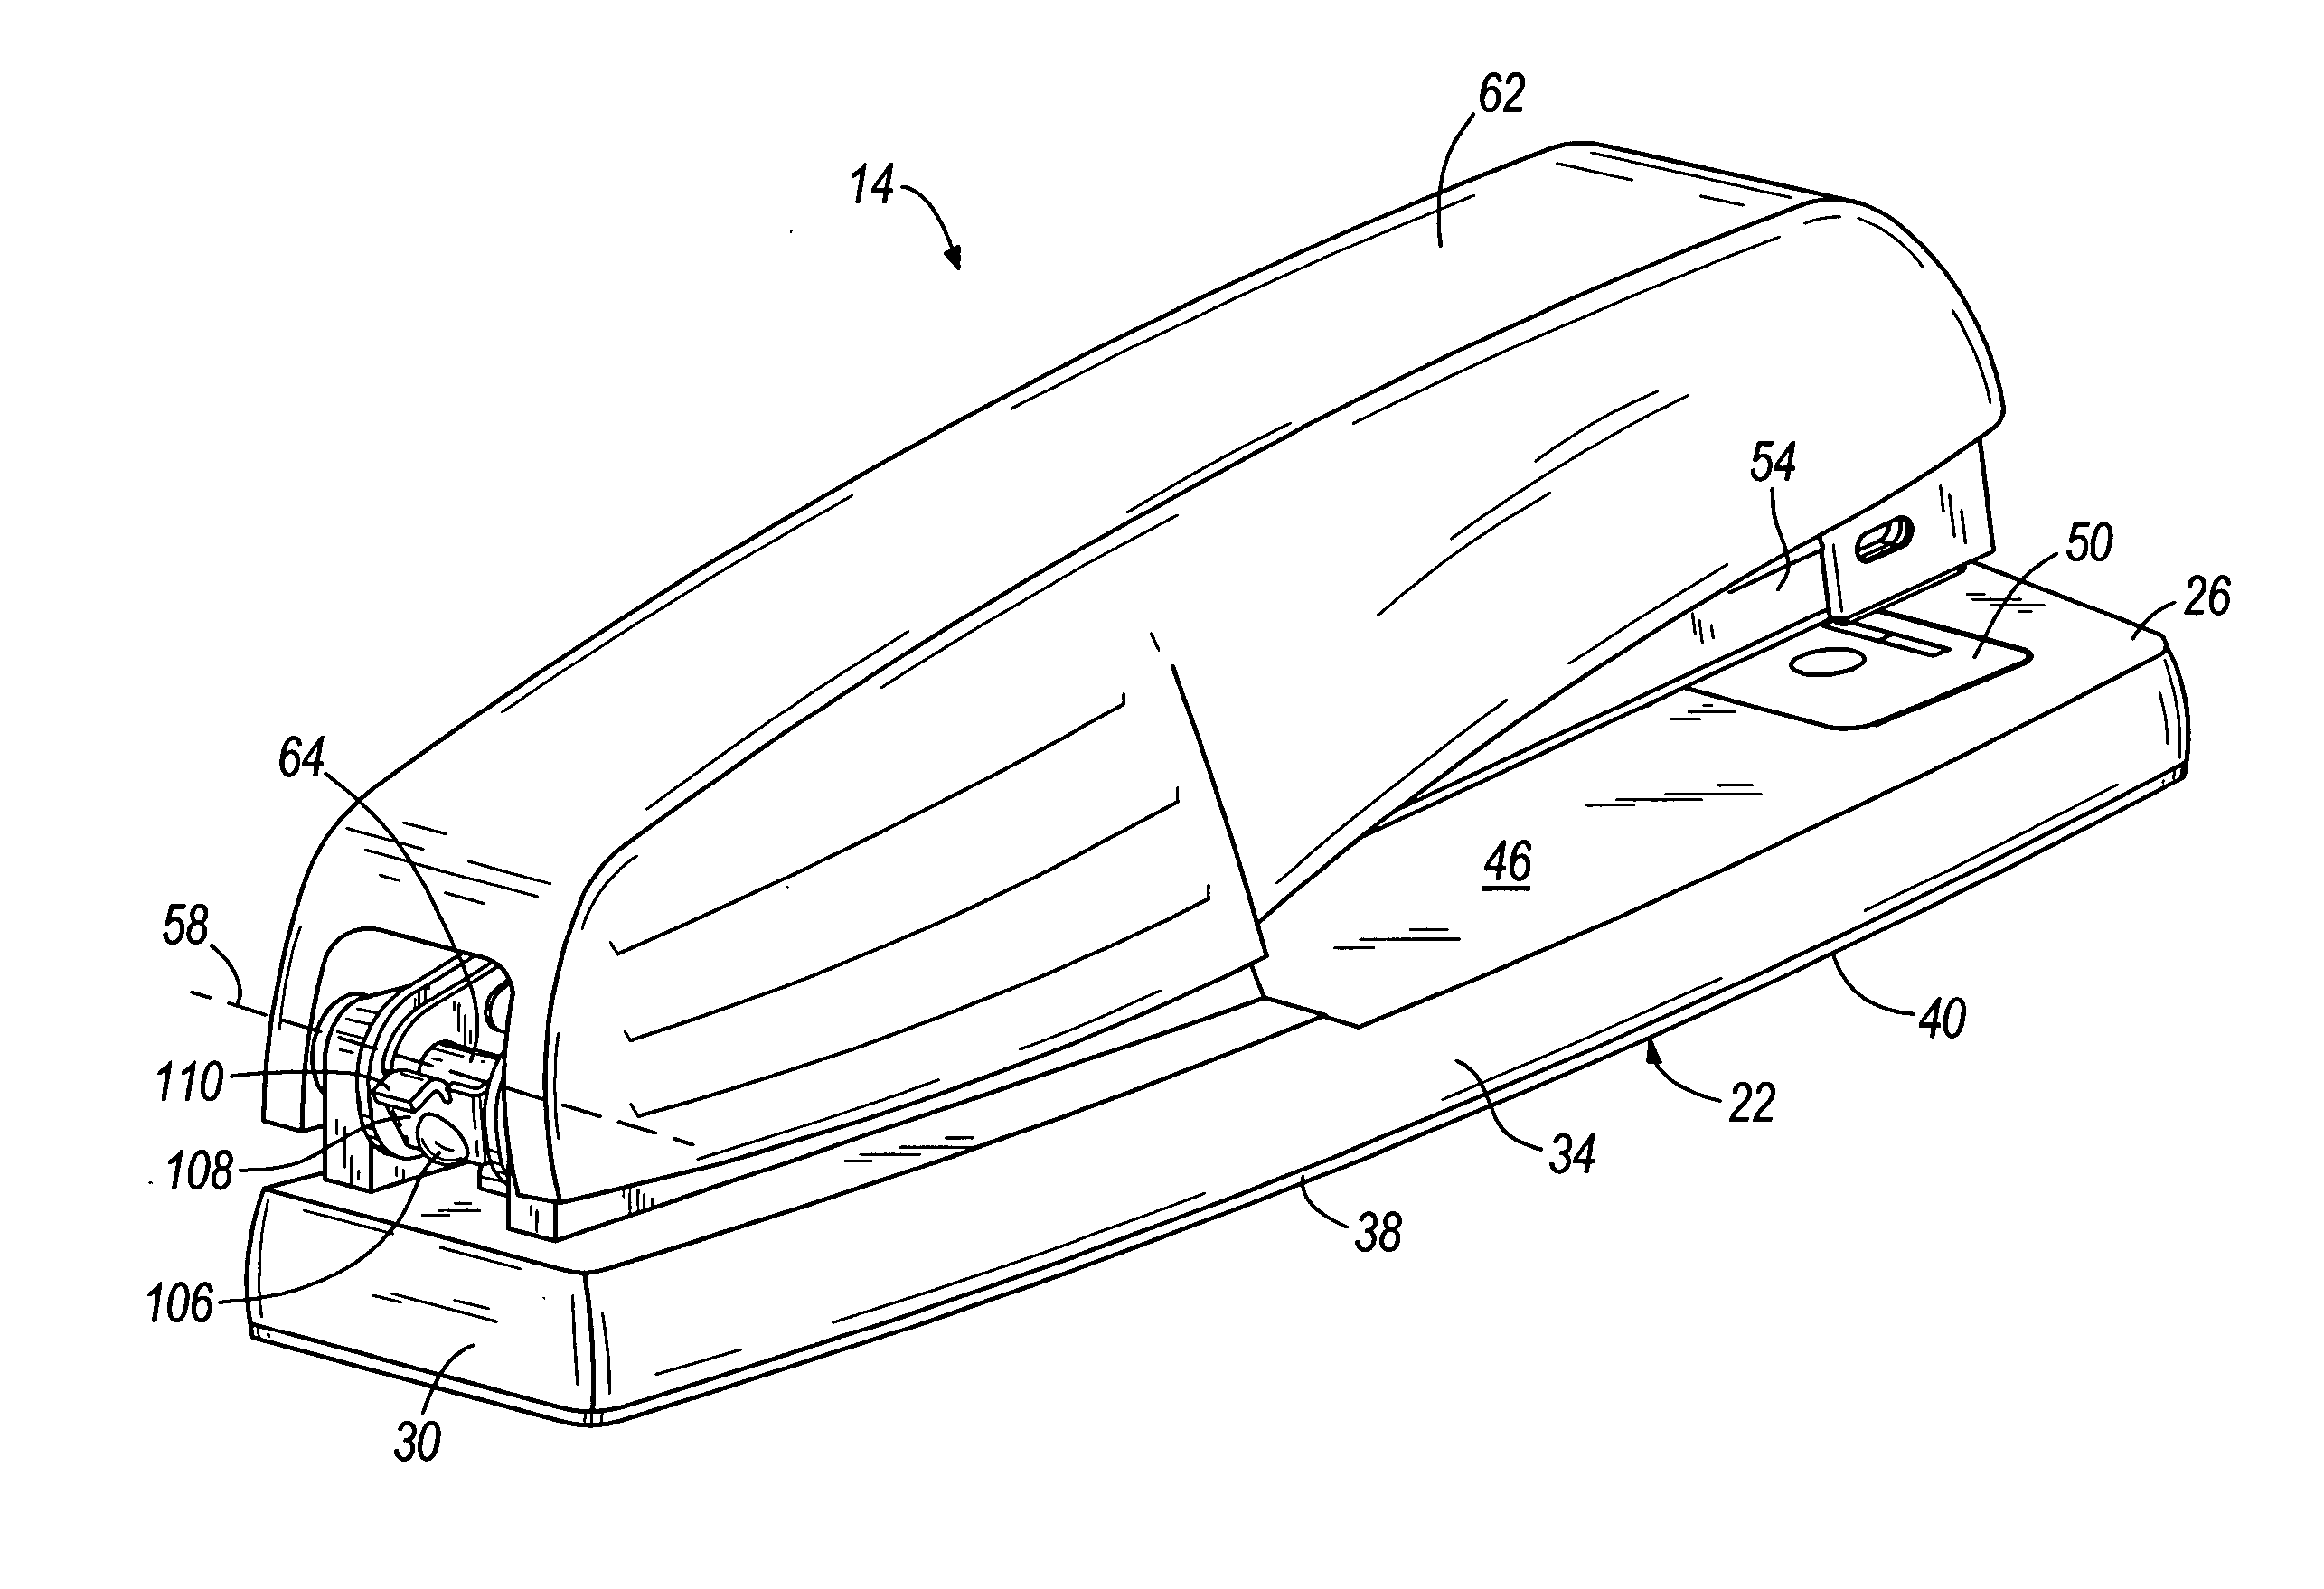 Stapler Assembly Drawing Patent Drawing